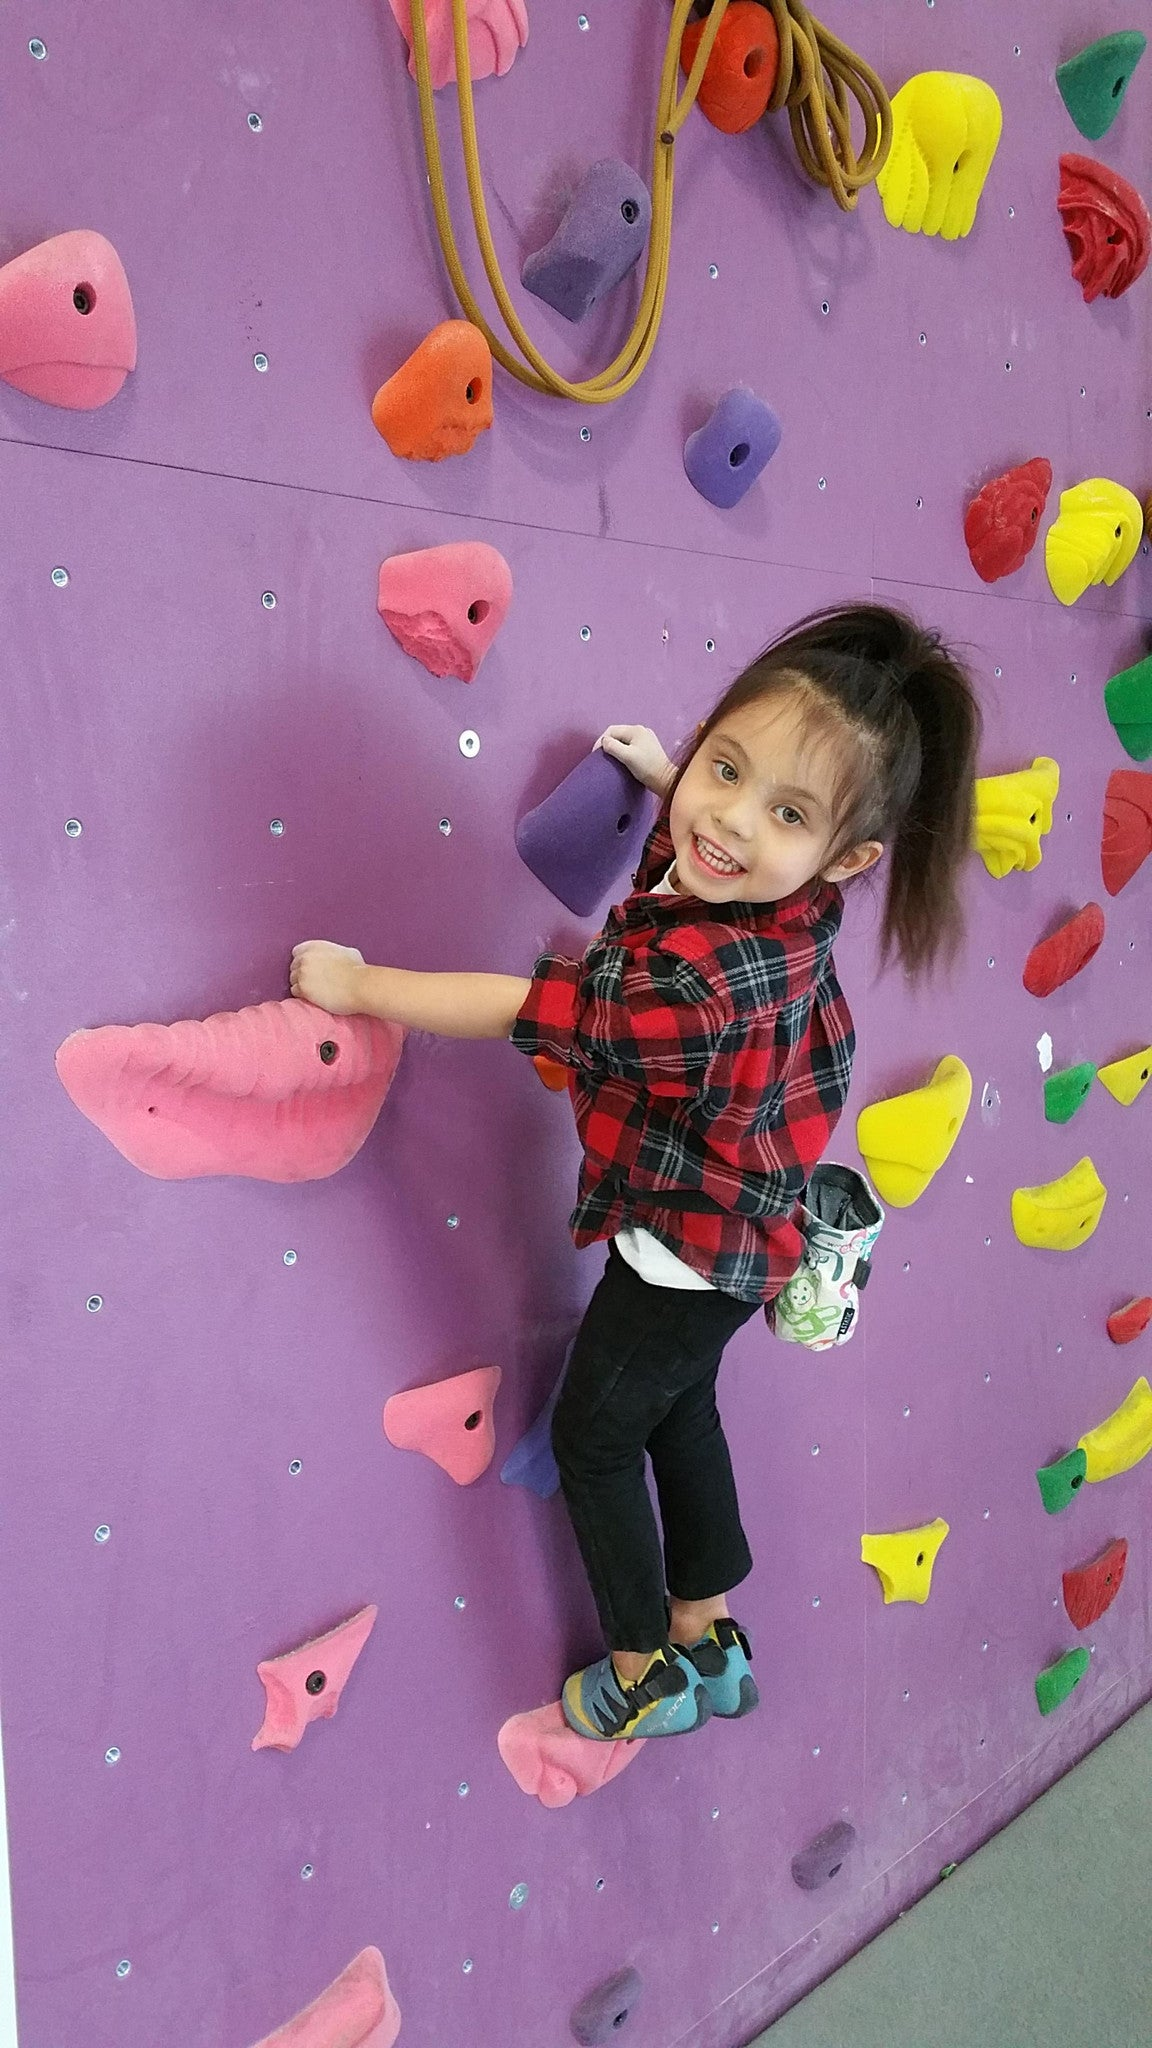 Benefits of Rock Climbing for Children